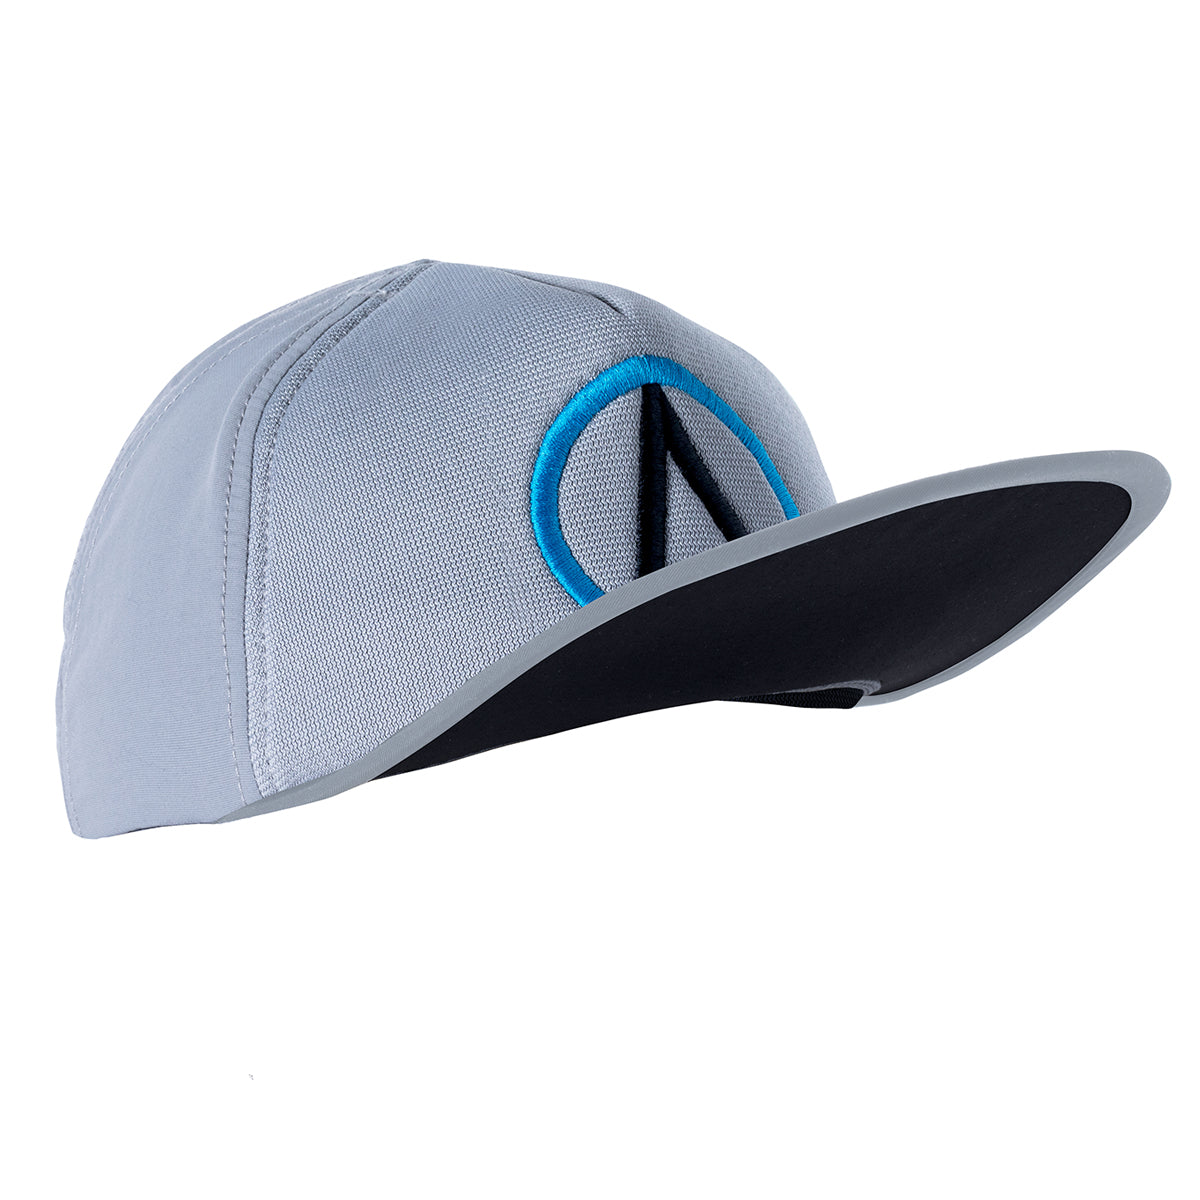 Kaiola Surf Hat - Misty Grey with Blue